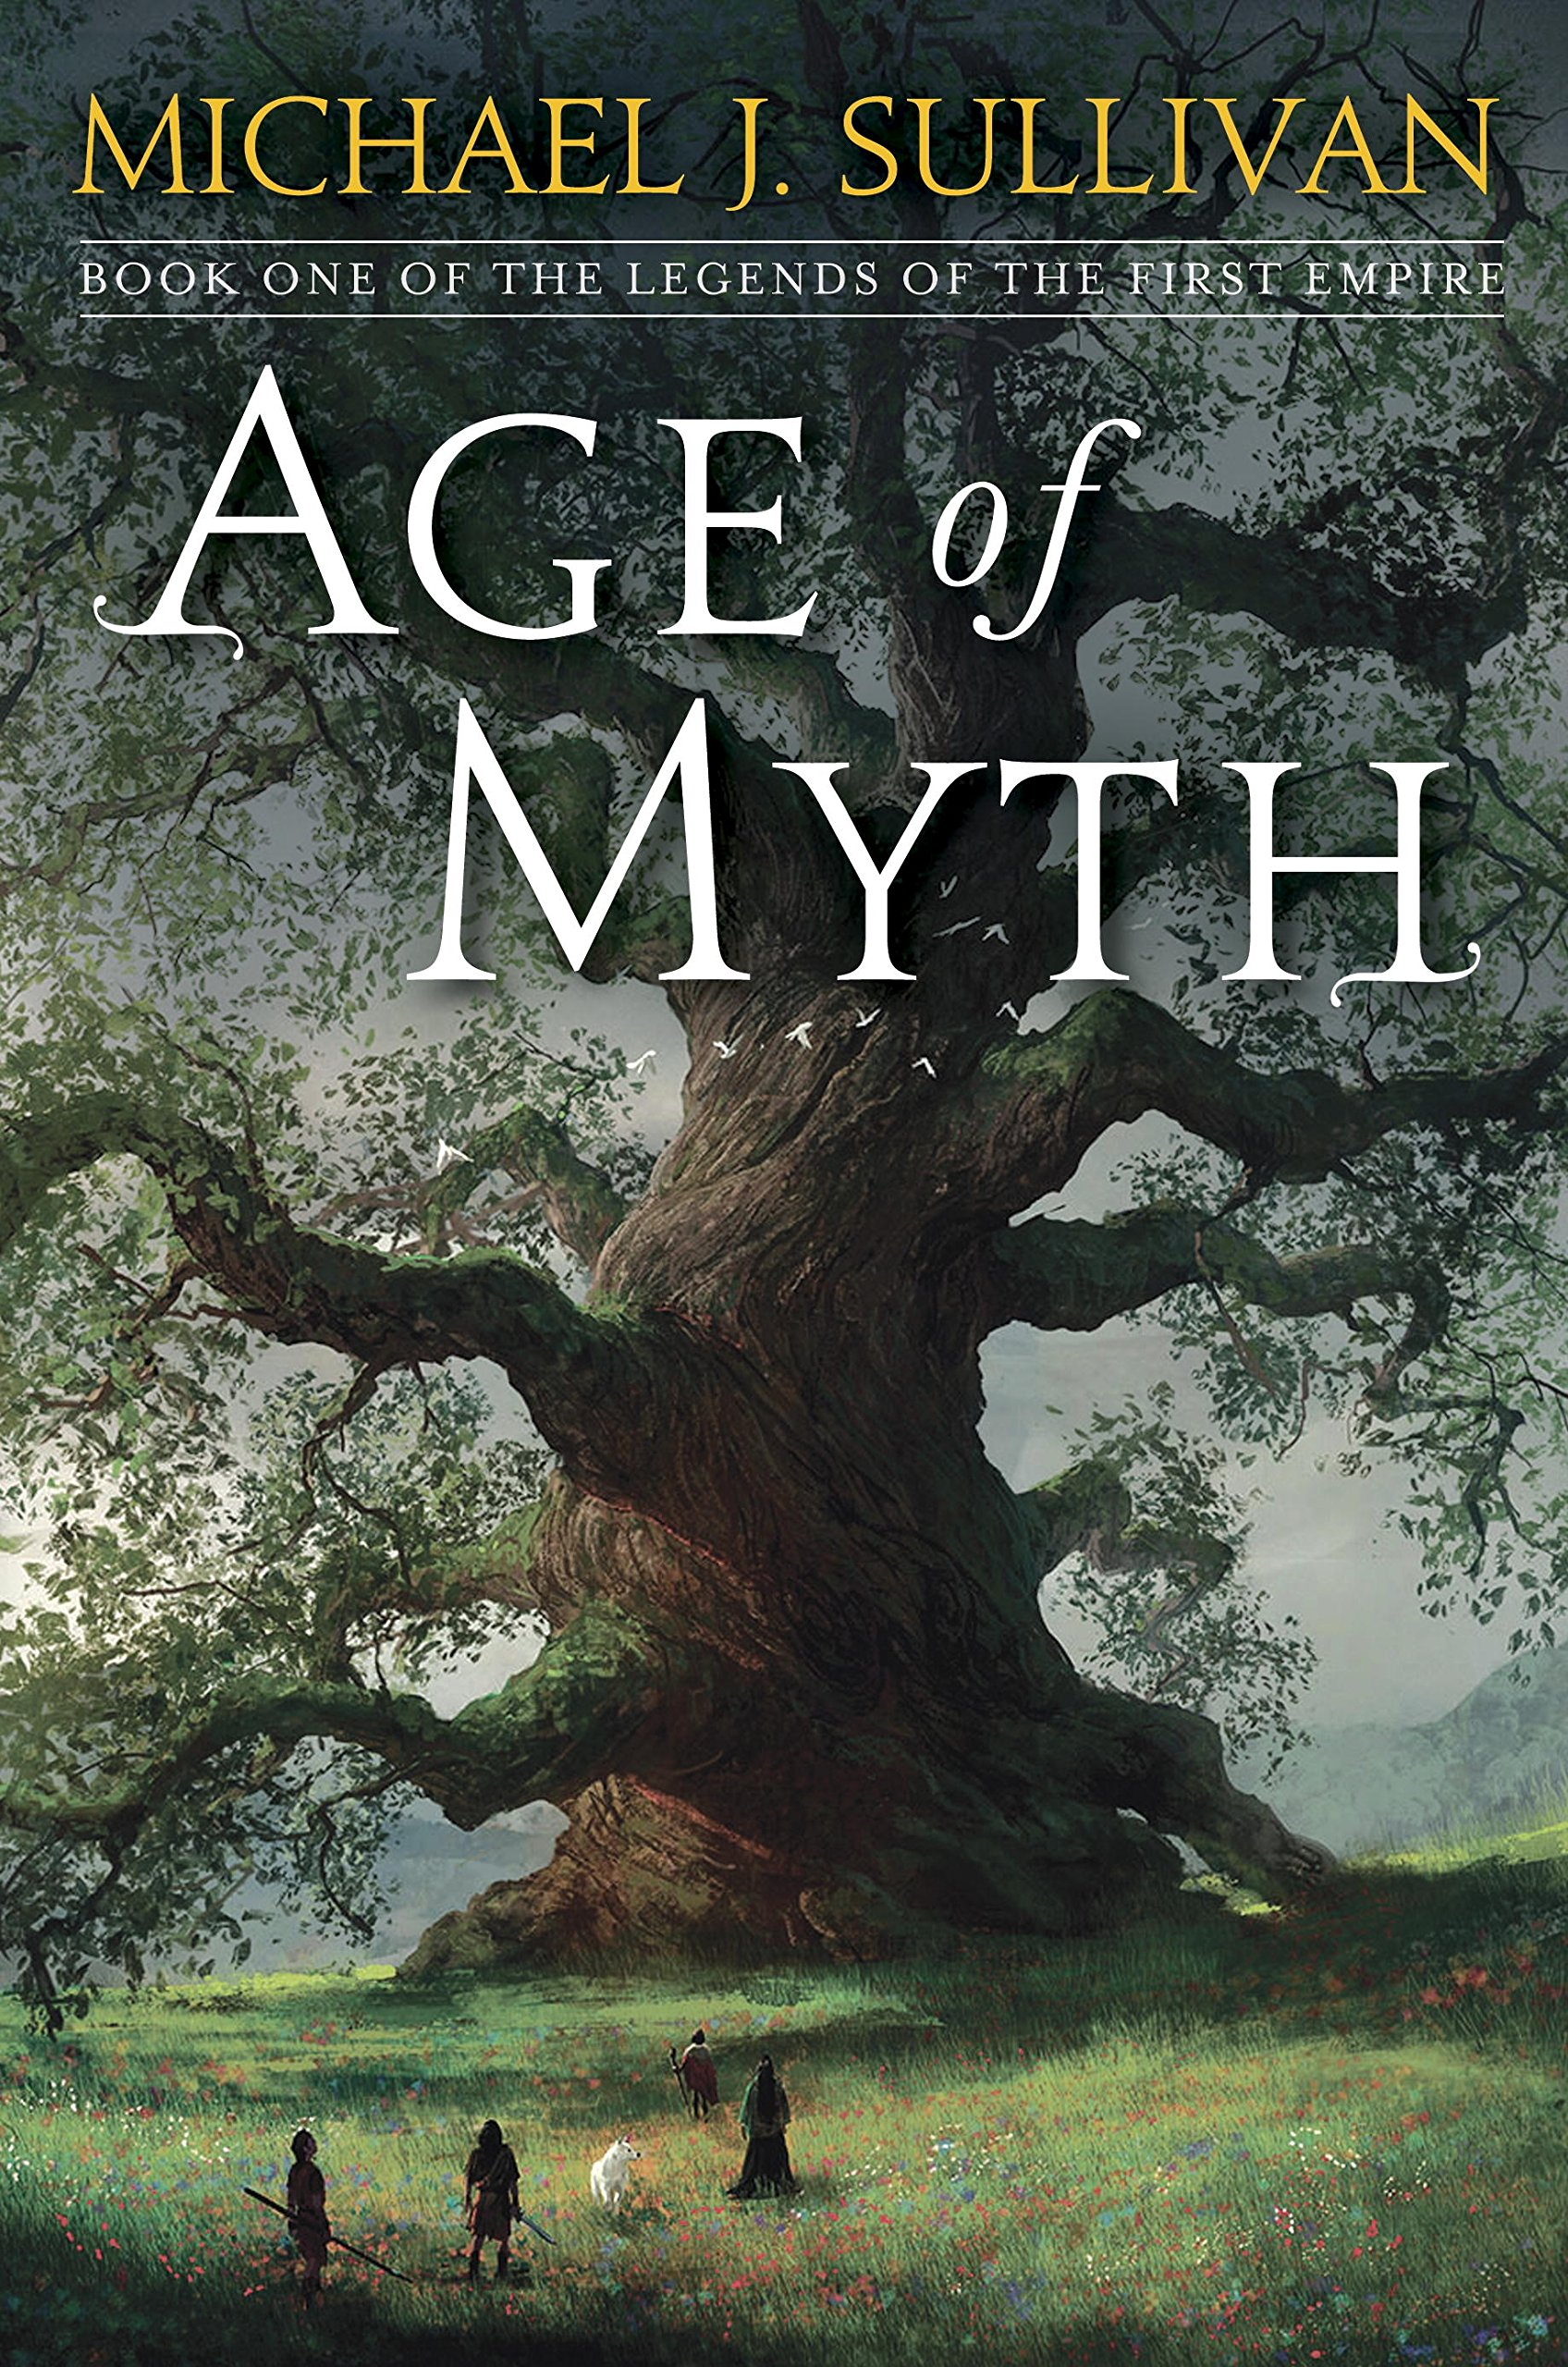 the myth of continents book review The myth of continents: a critique of metageography / edition  the myth of continents sheds new light on how  into a single continent in a book published in the .